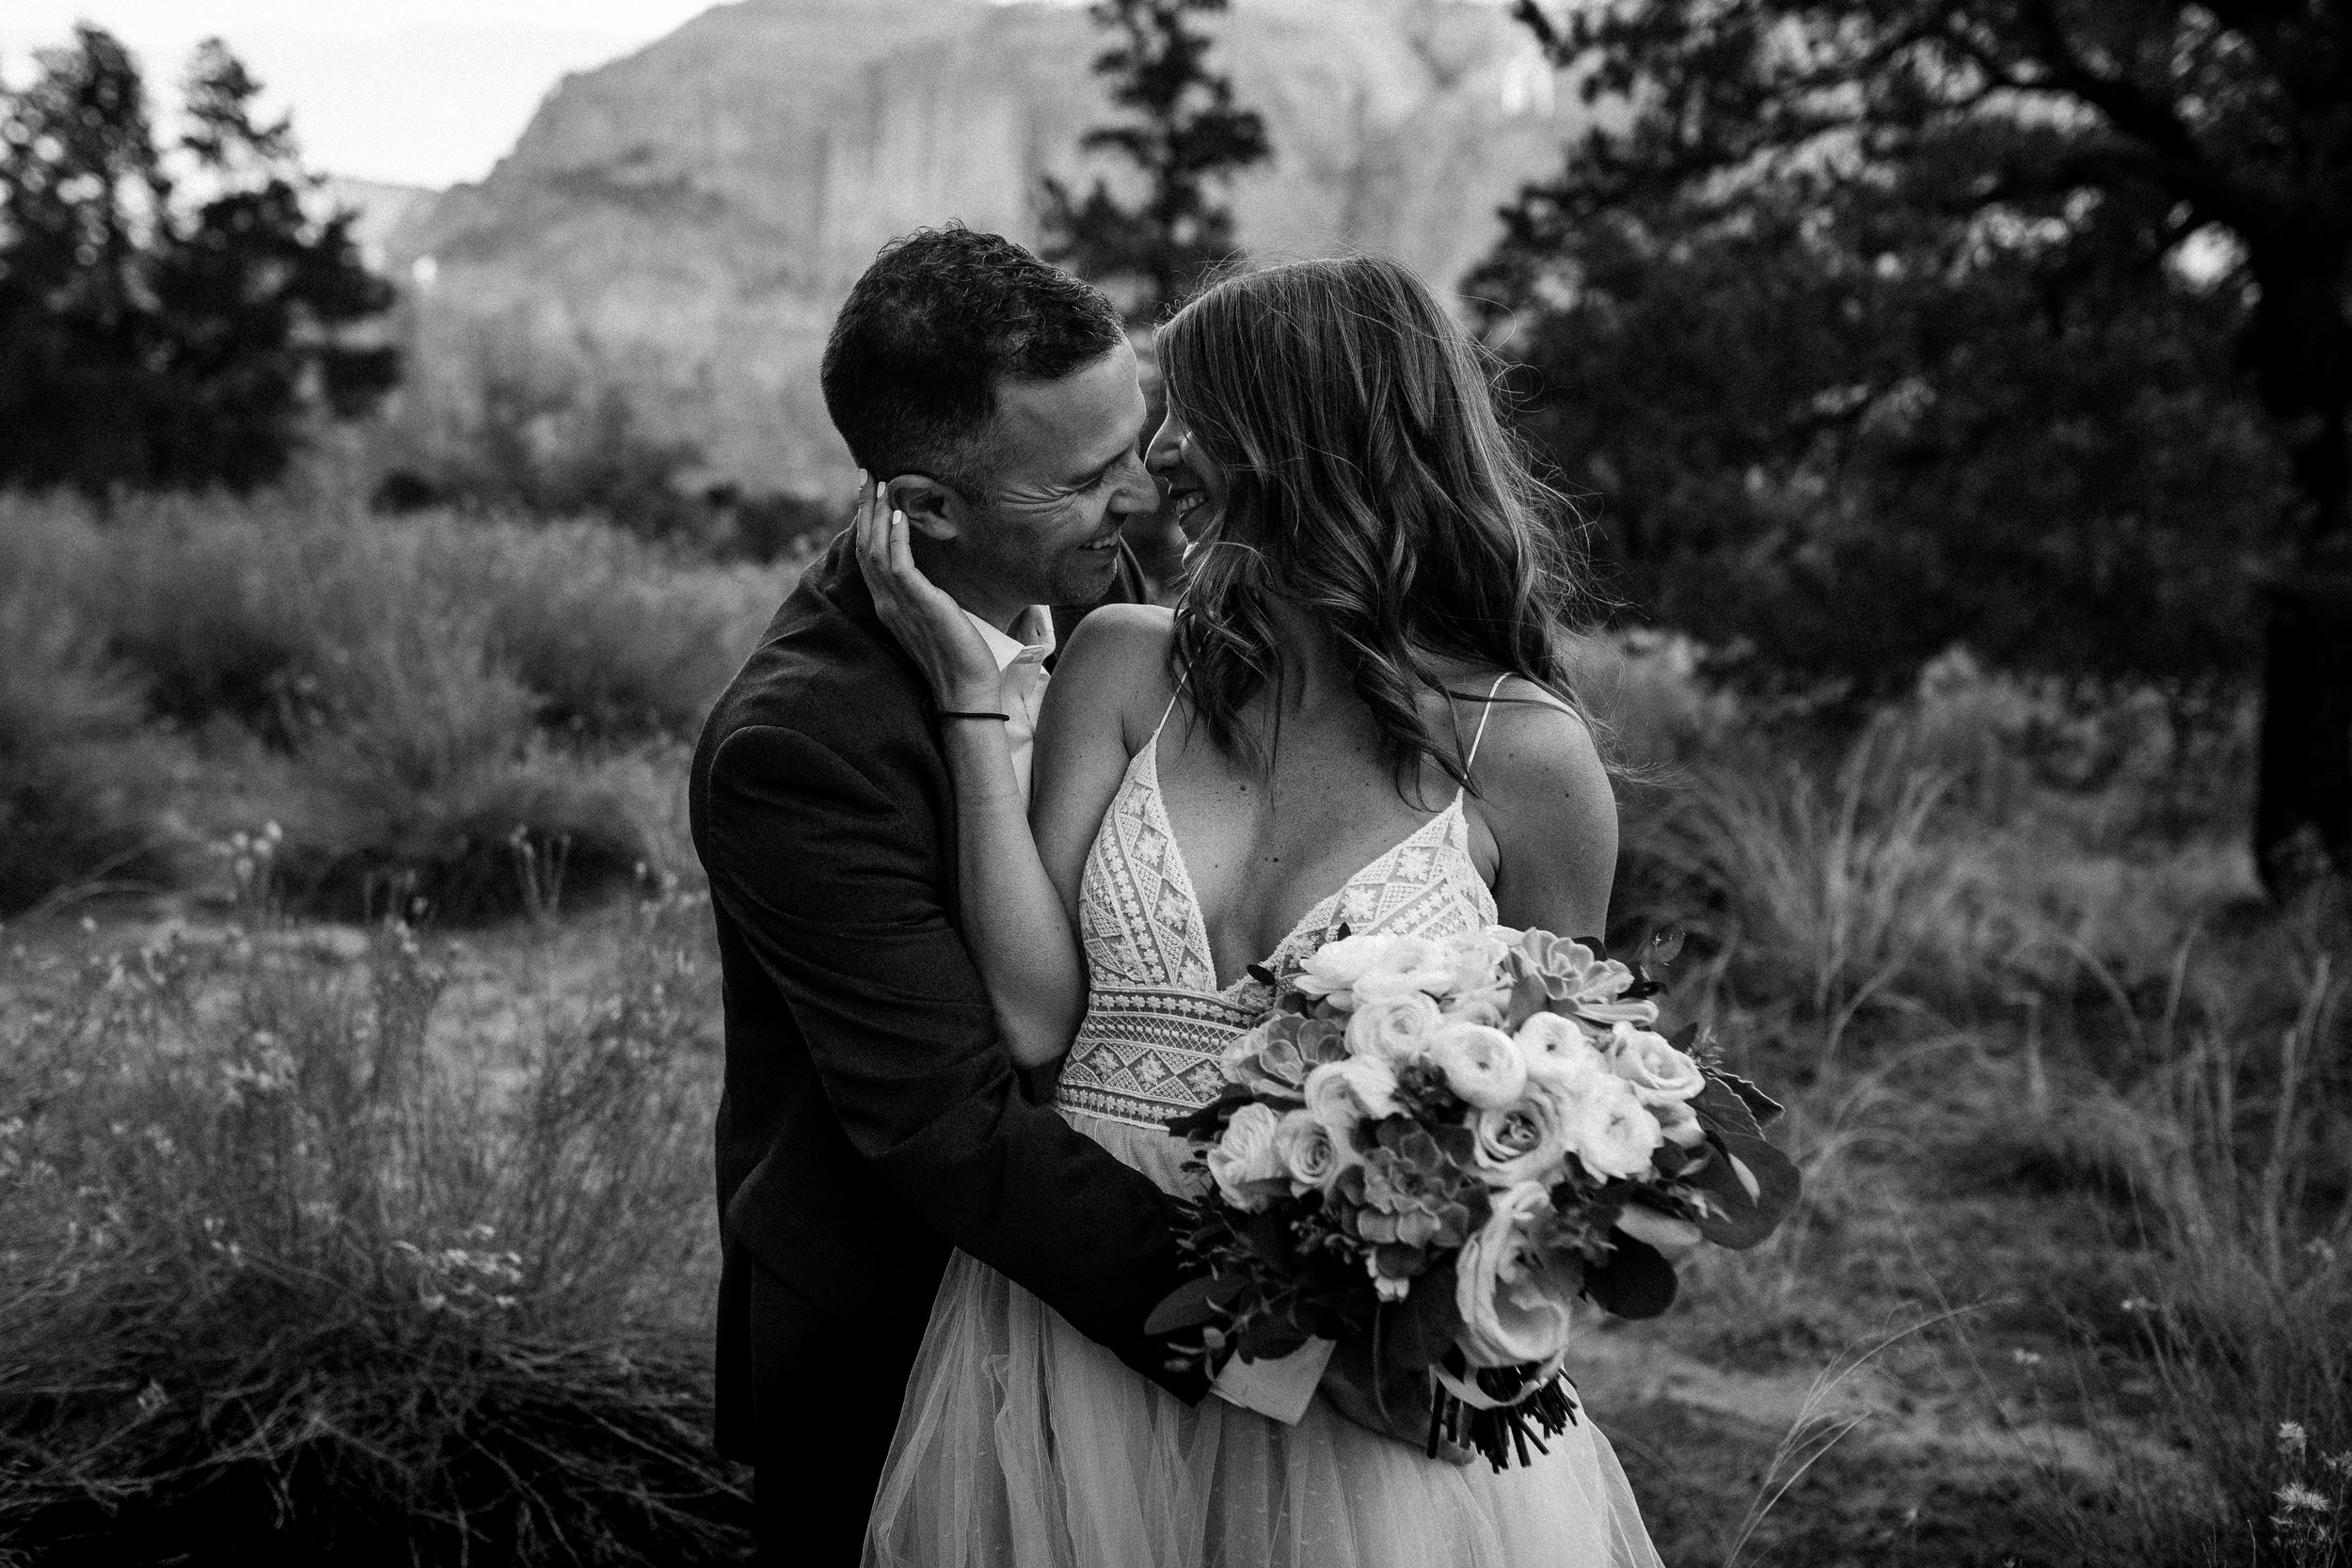 nicole-daacke-photography-zion-national-park-elopement-photographer-canyon-overlook-trail-elope-hiking-adventure-wedding-photos-fall-utah-red-rock-canyon-stgeorge-eloping-photographer-21.jpg